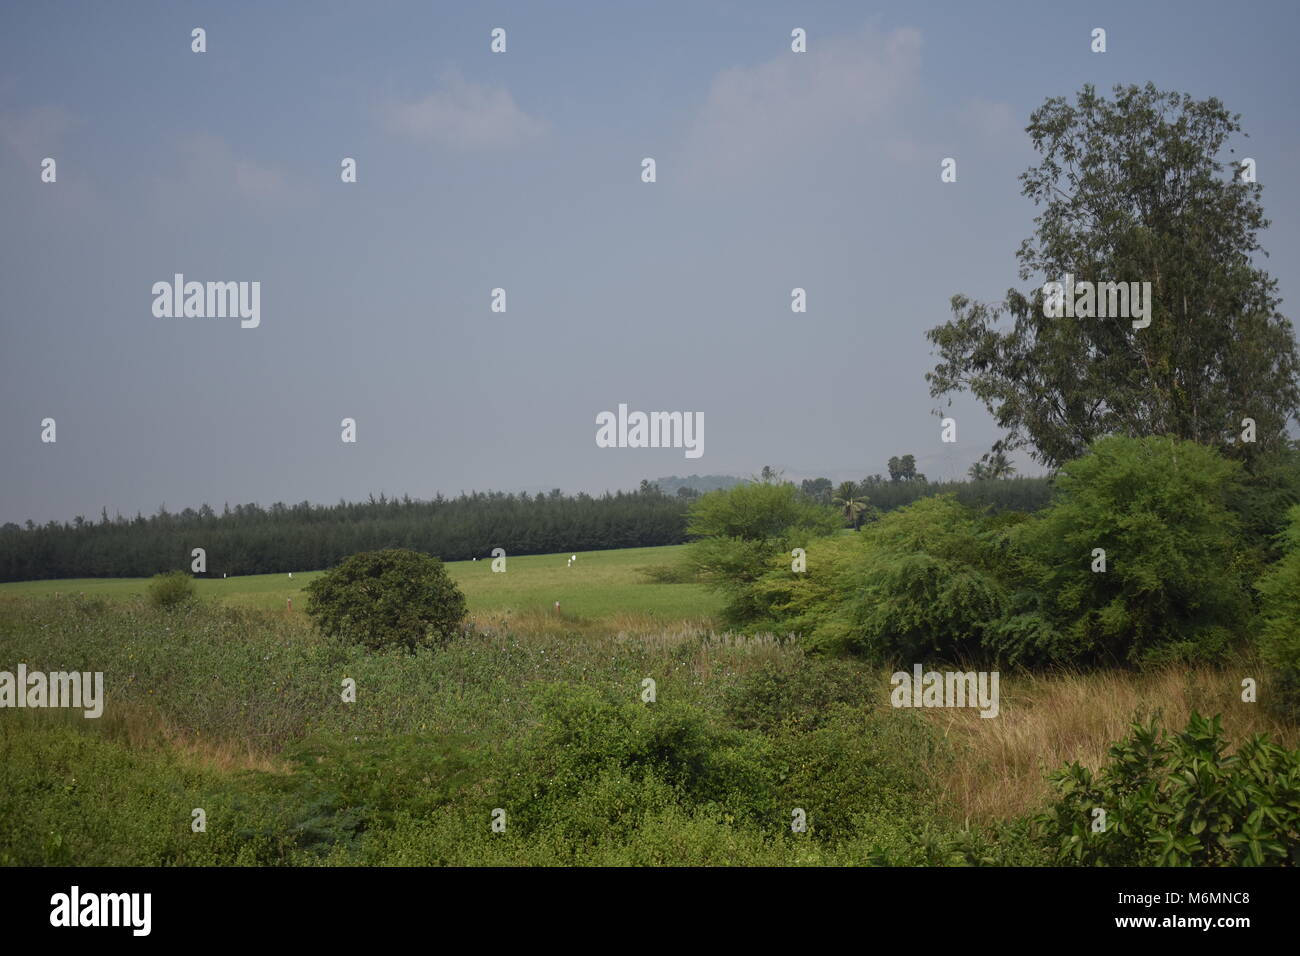 paddy farming in land with casuarina & coconut trees looking very nice. - Stock Image